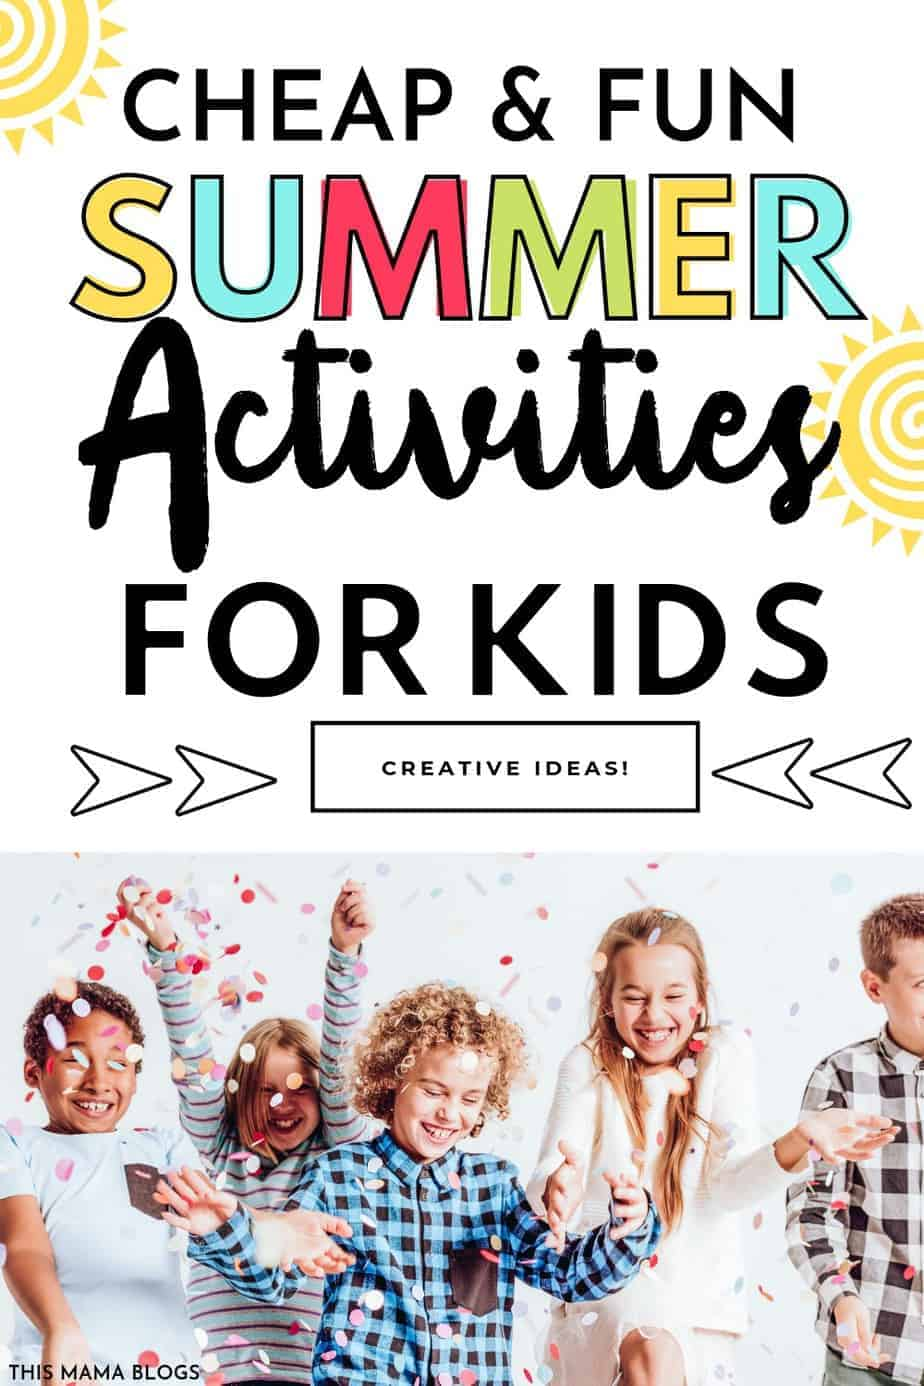 Are you racking your brains for  unique and fun summer activities for kids at home without spending a fortune? Luckily, you don't always have to pay for expensive summer camps or workshops with these simple, and fun summer activities at home. Best of all, these activities are gadget-free and will keep your kids moving and having fun without draining your bank account. #summeractivities #budget #frugalsummer #cheapsummeractivities